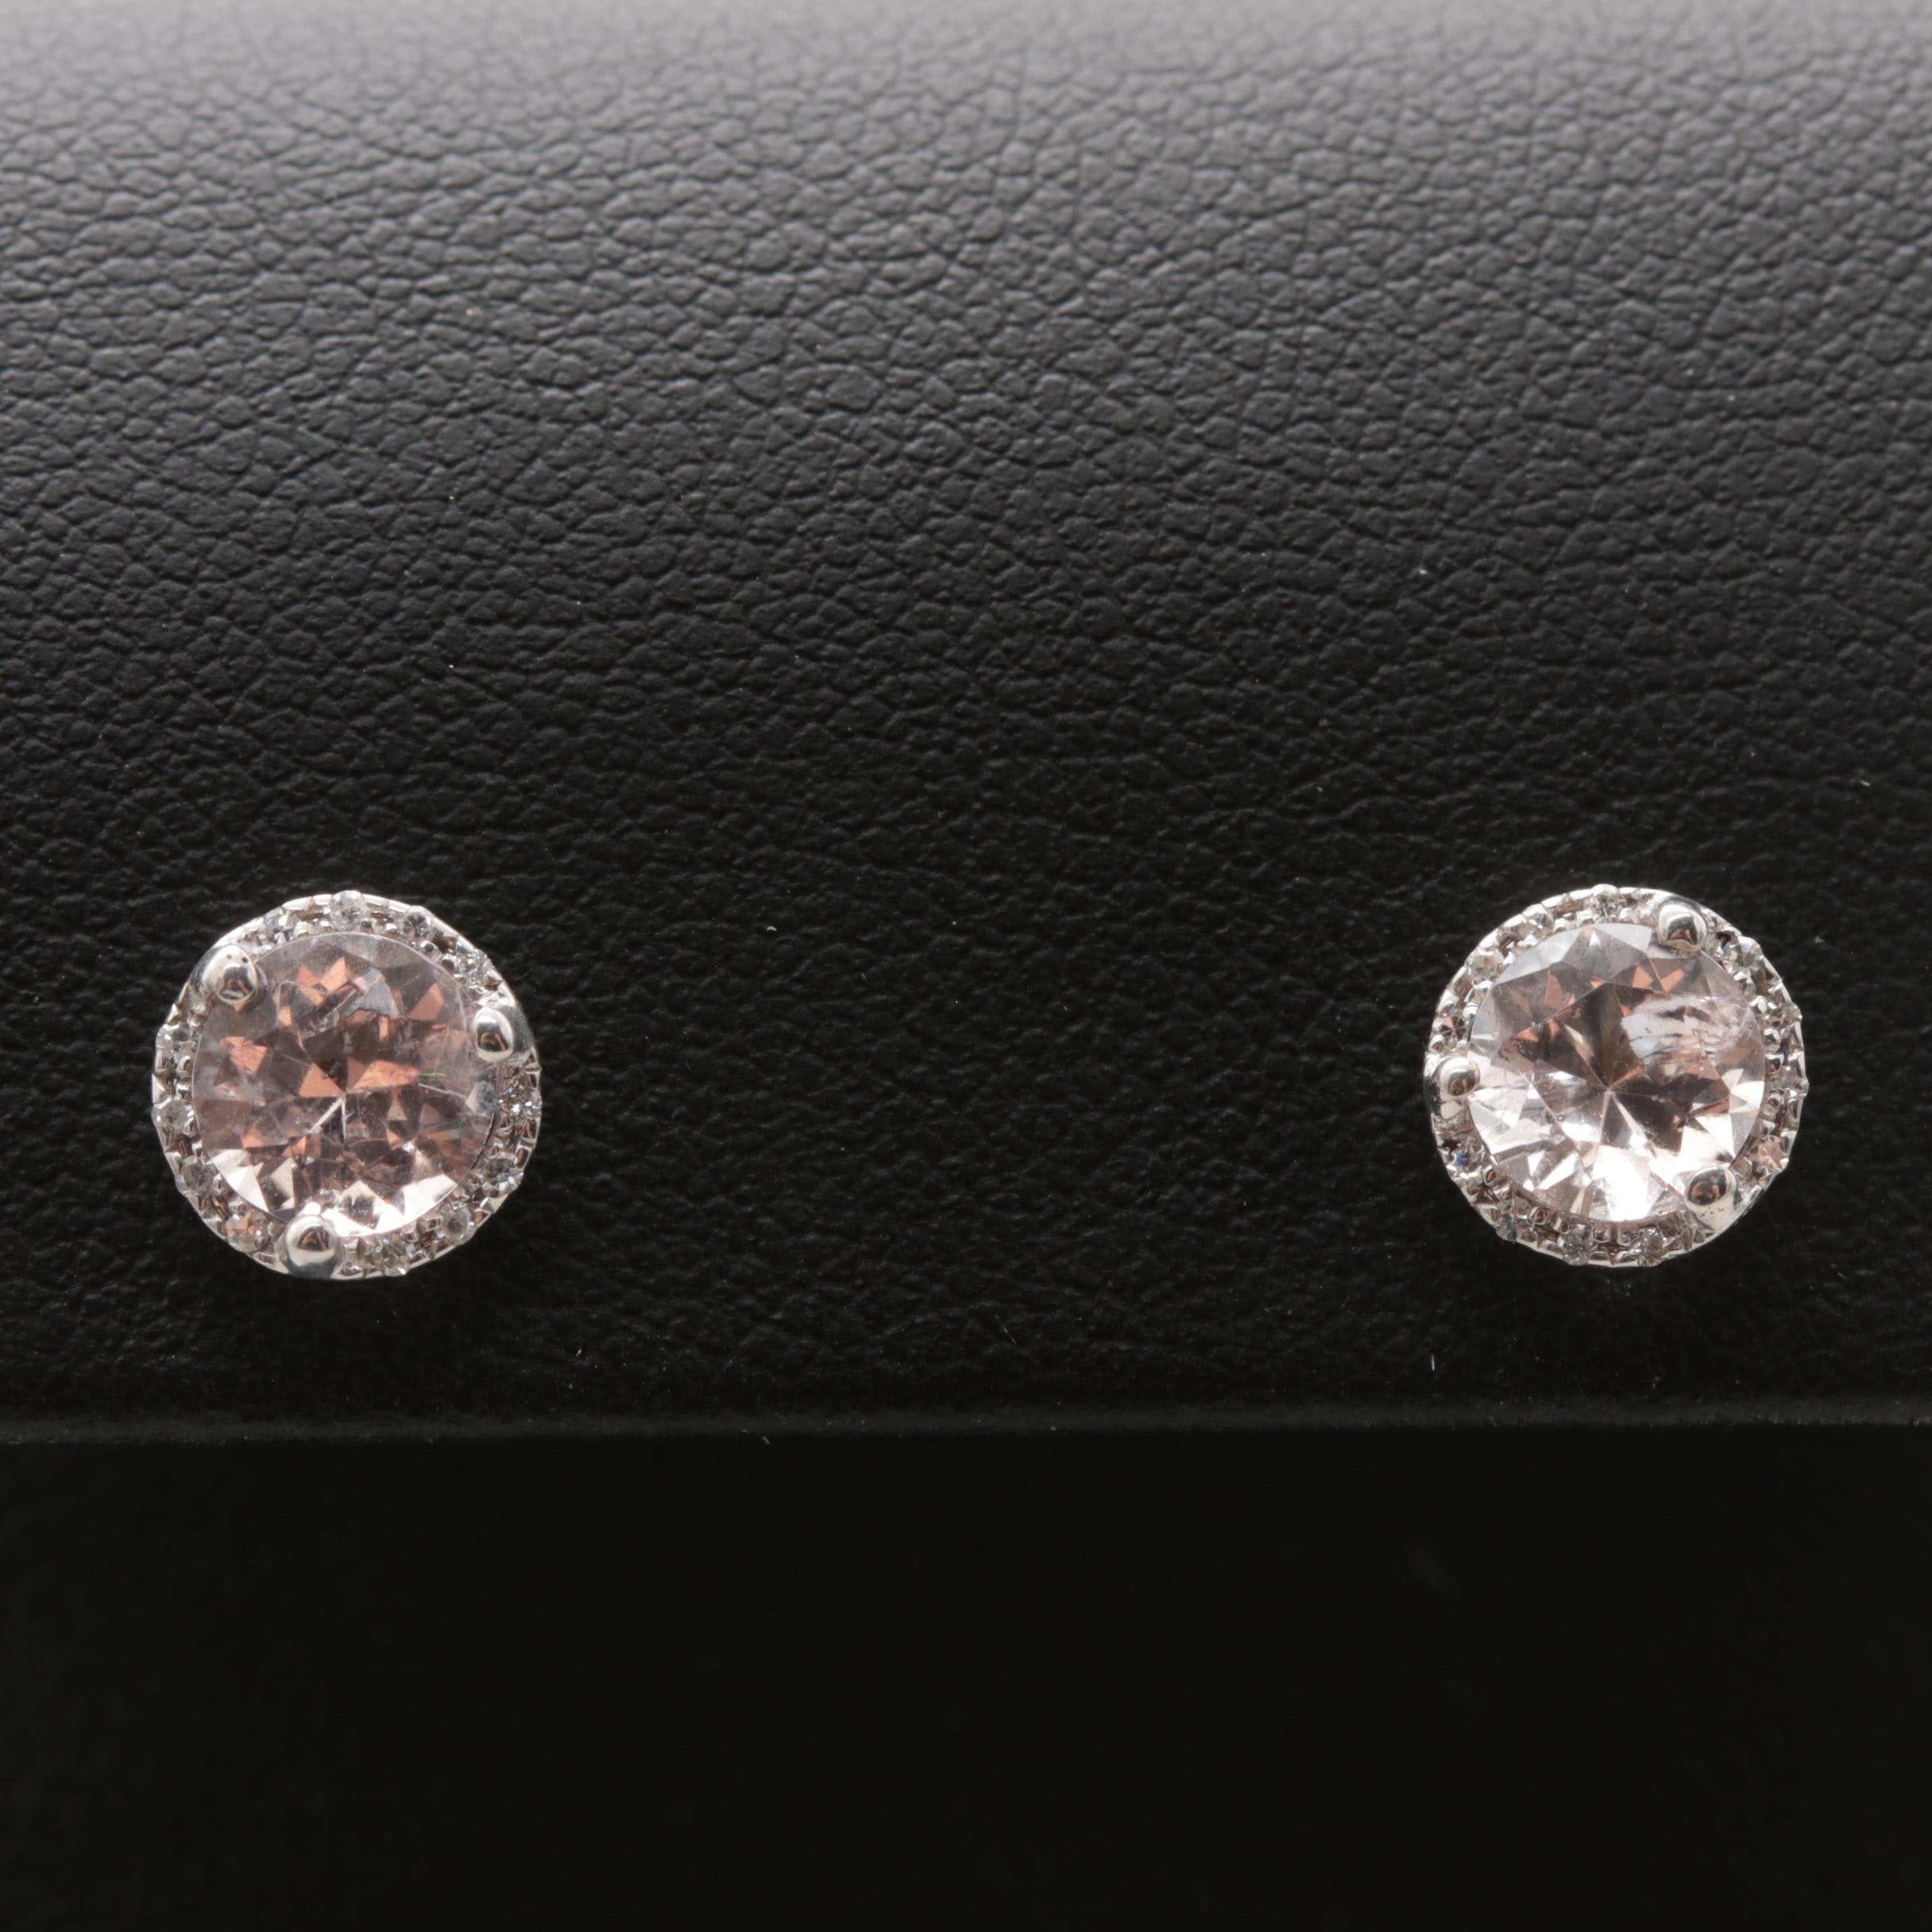 14K White Gold Morganite and Diamond Stud Earrings